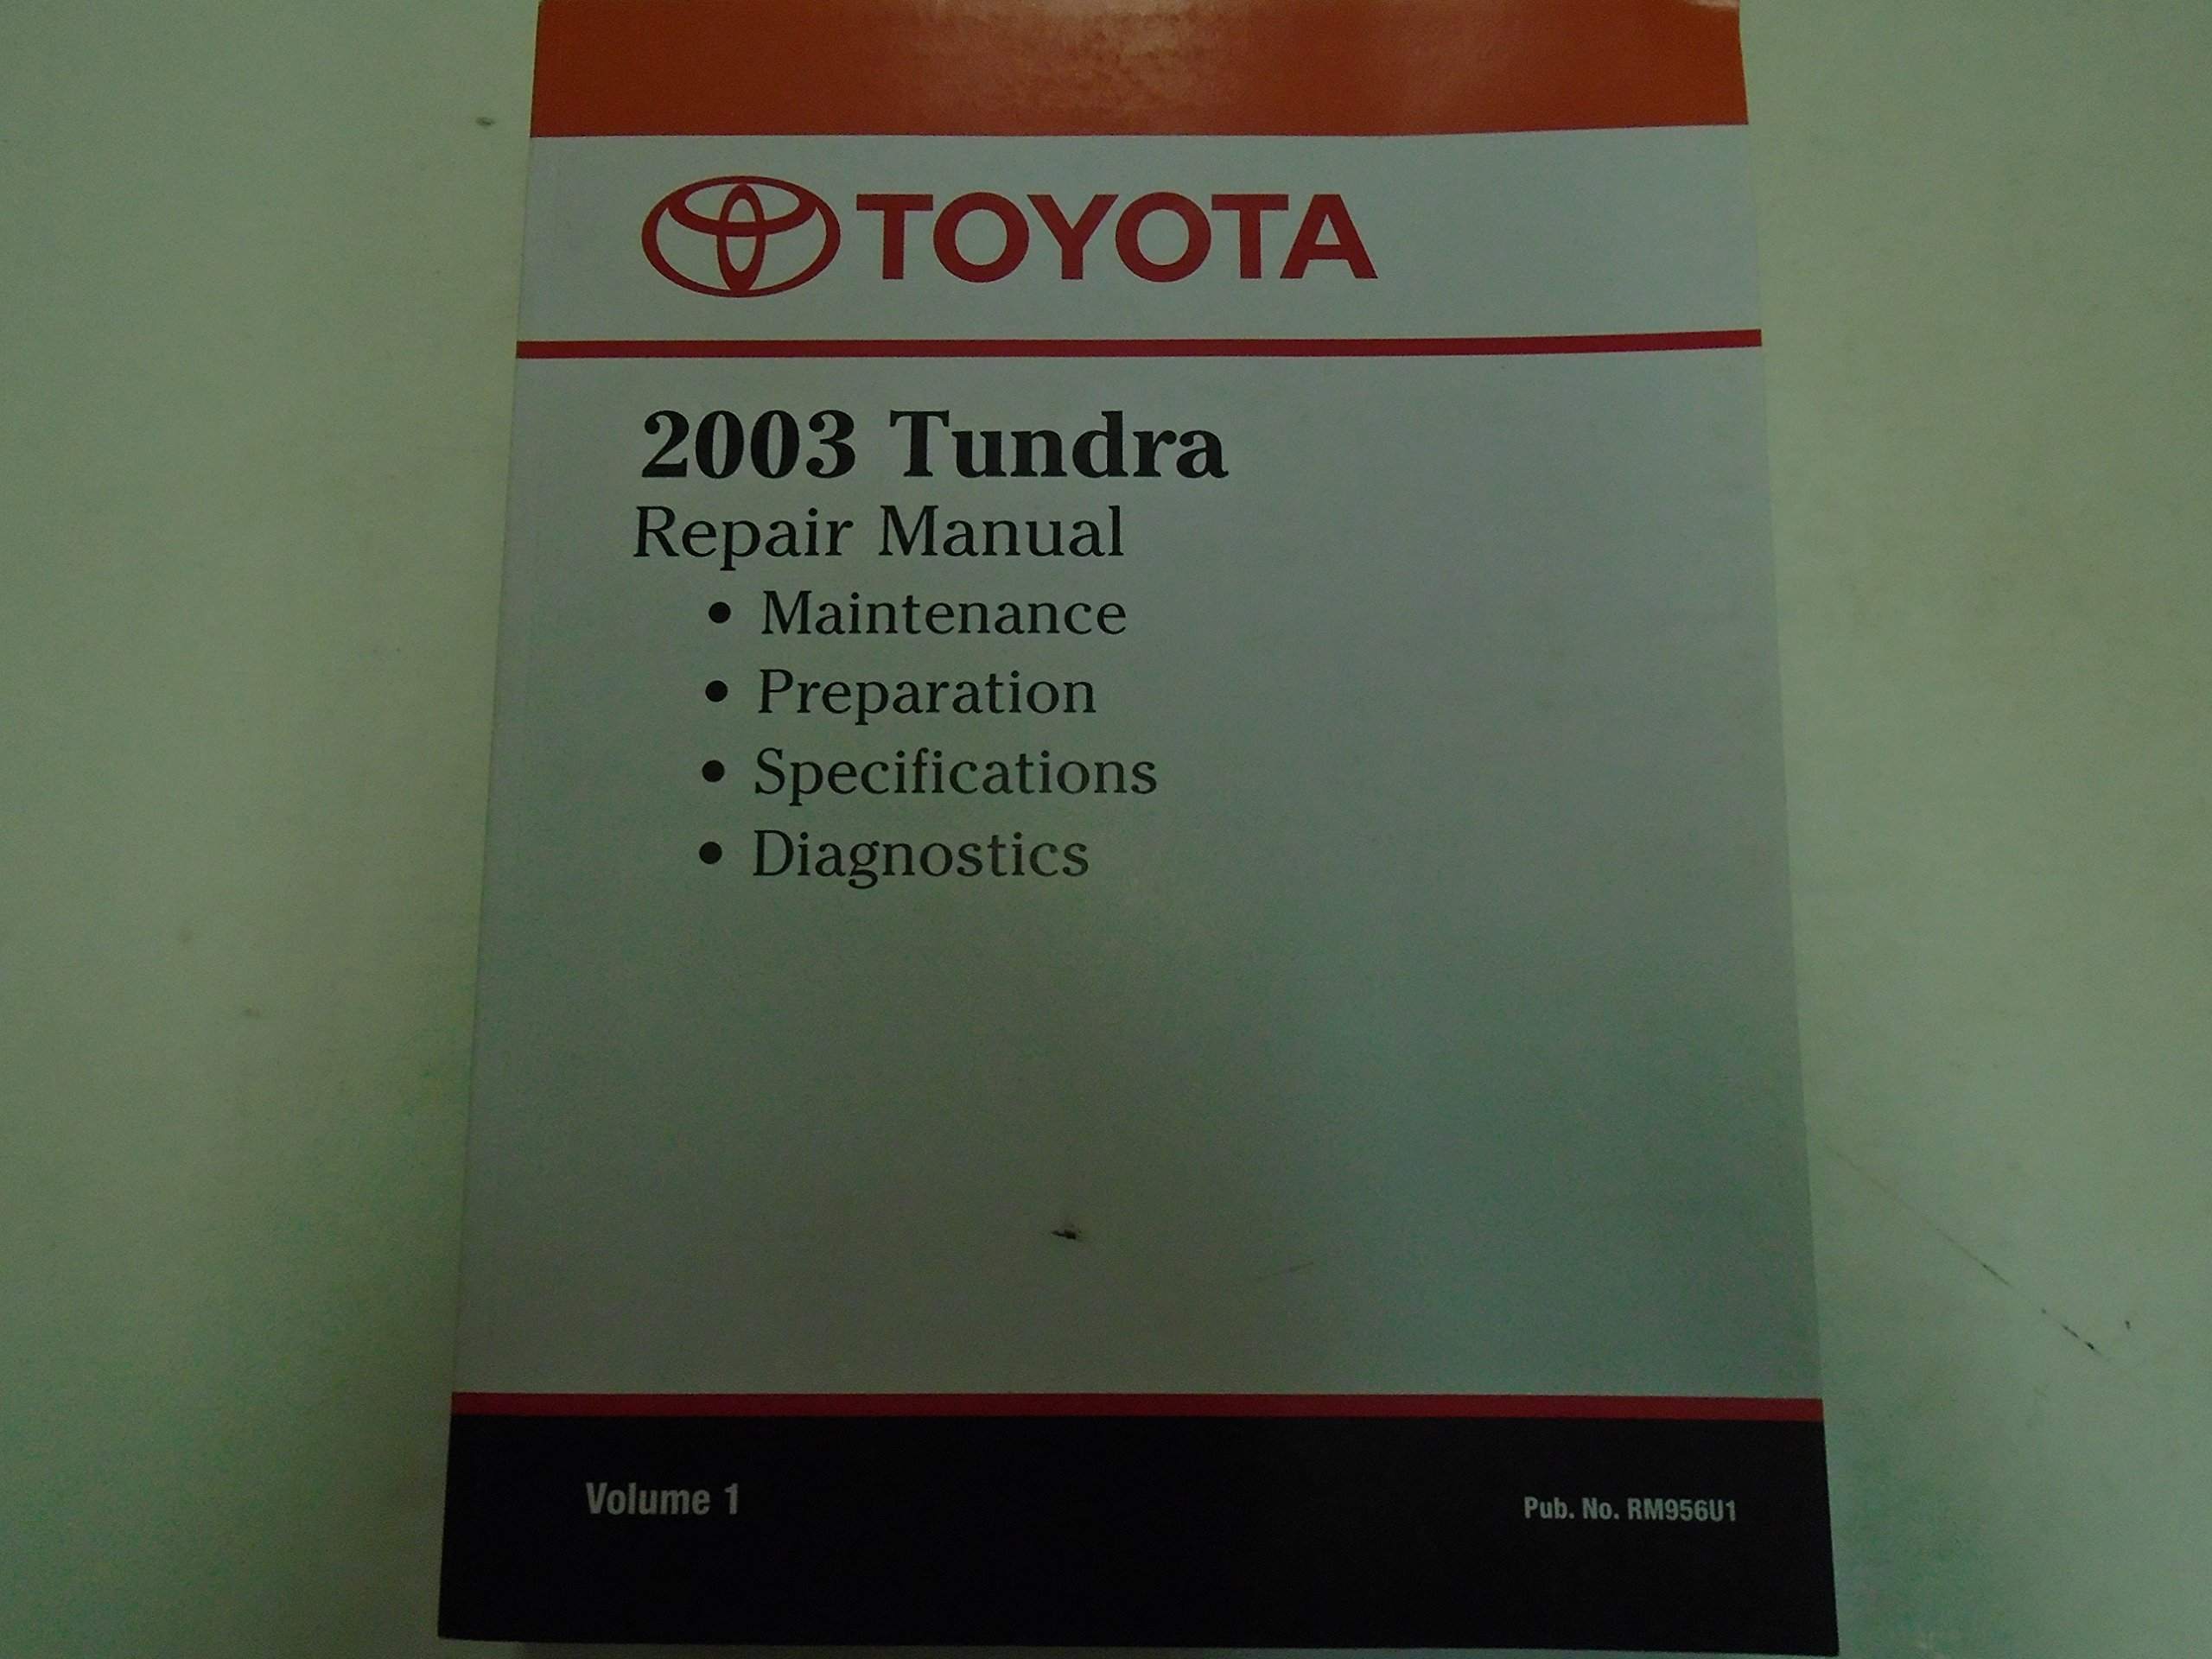 2003 Toyota Tundra Repair Manual Complete Wiring Diagrams Diagram Service Shop Vol 1 Oem Volume Rh Amazon Com